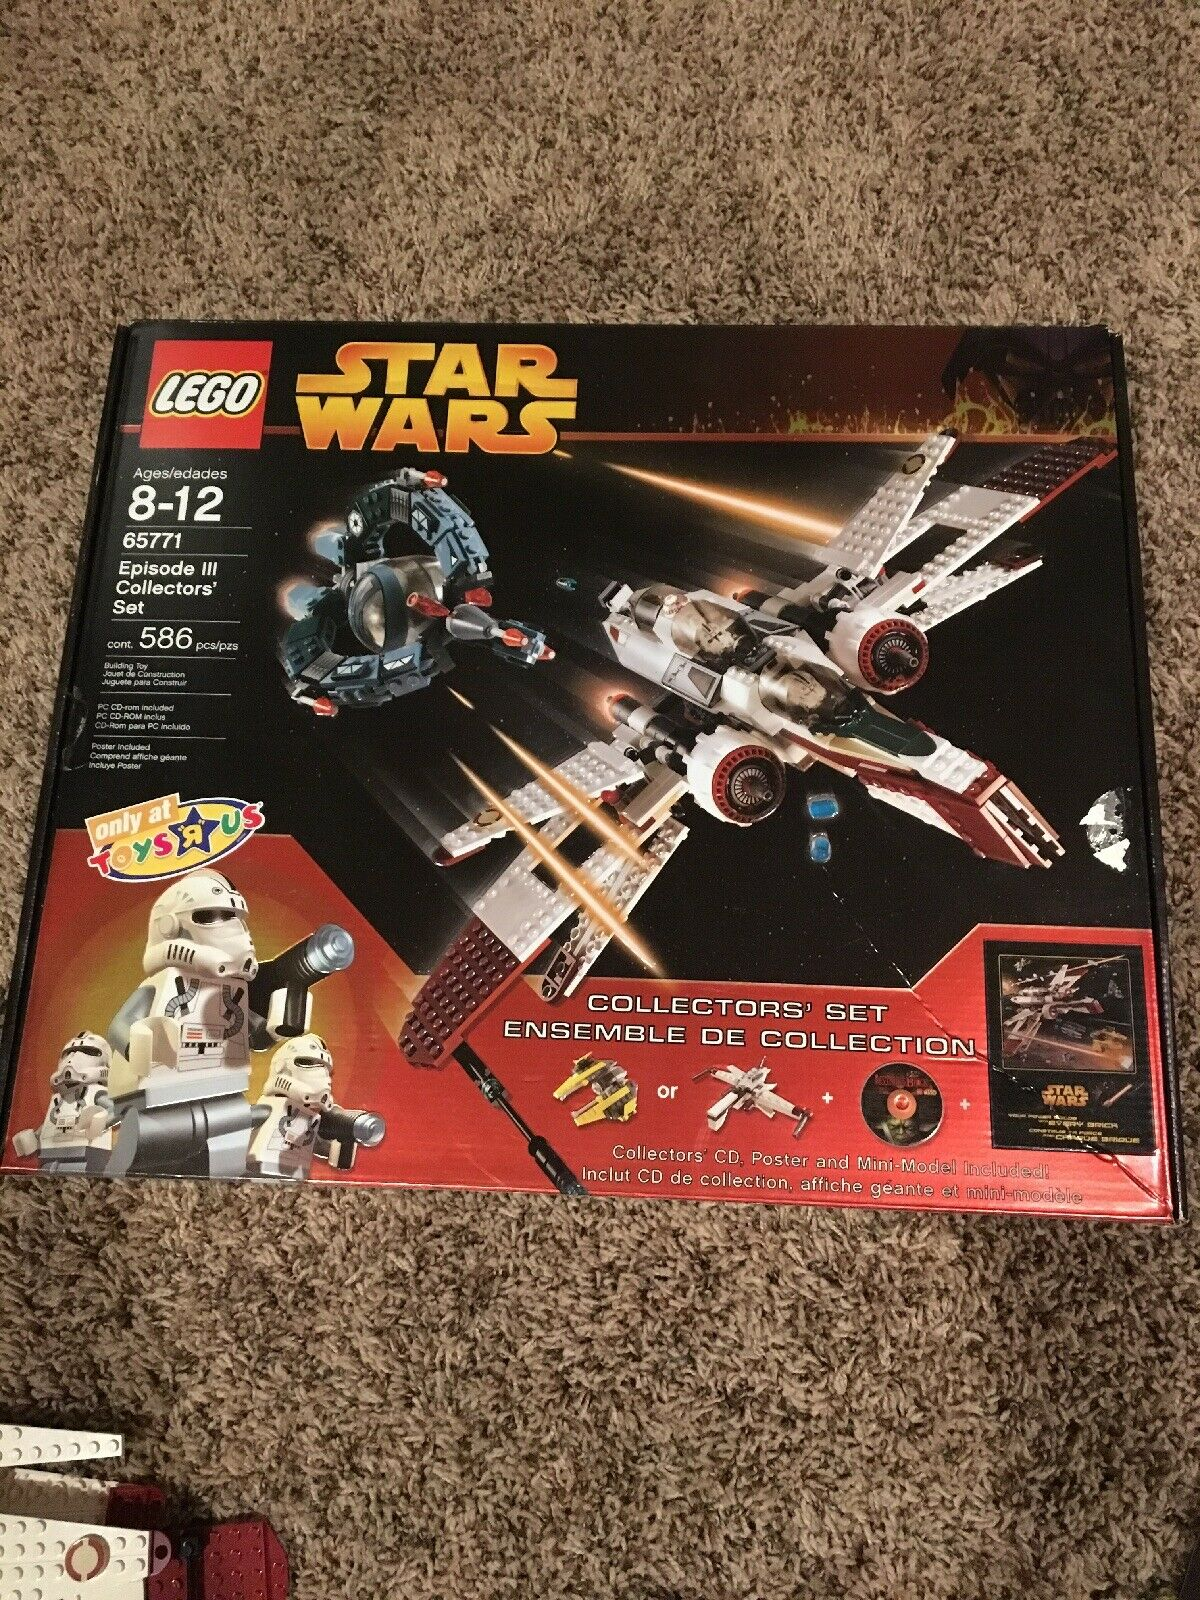 Lego Star Wars Episode III Collectors' Set Great Condition W  Box Pre-Assembled